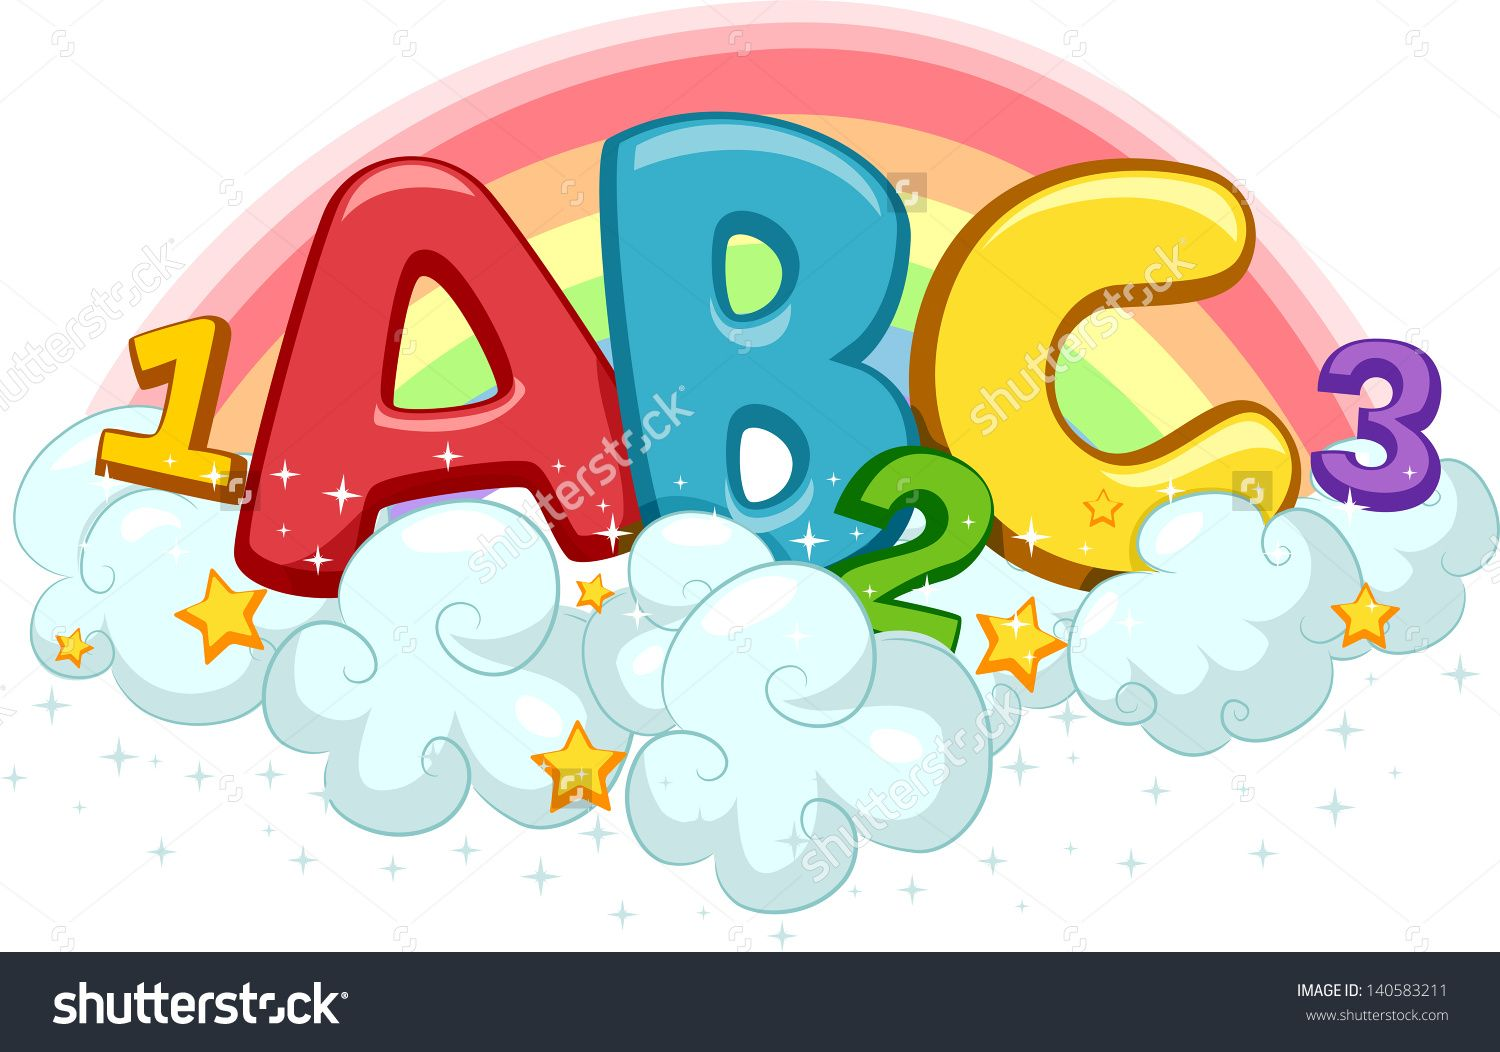 Illustration Of Abc And 123 On Clouds With Stars And